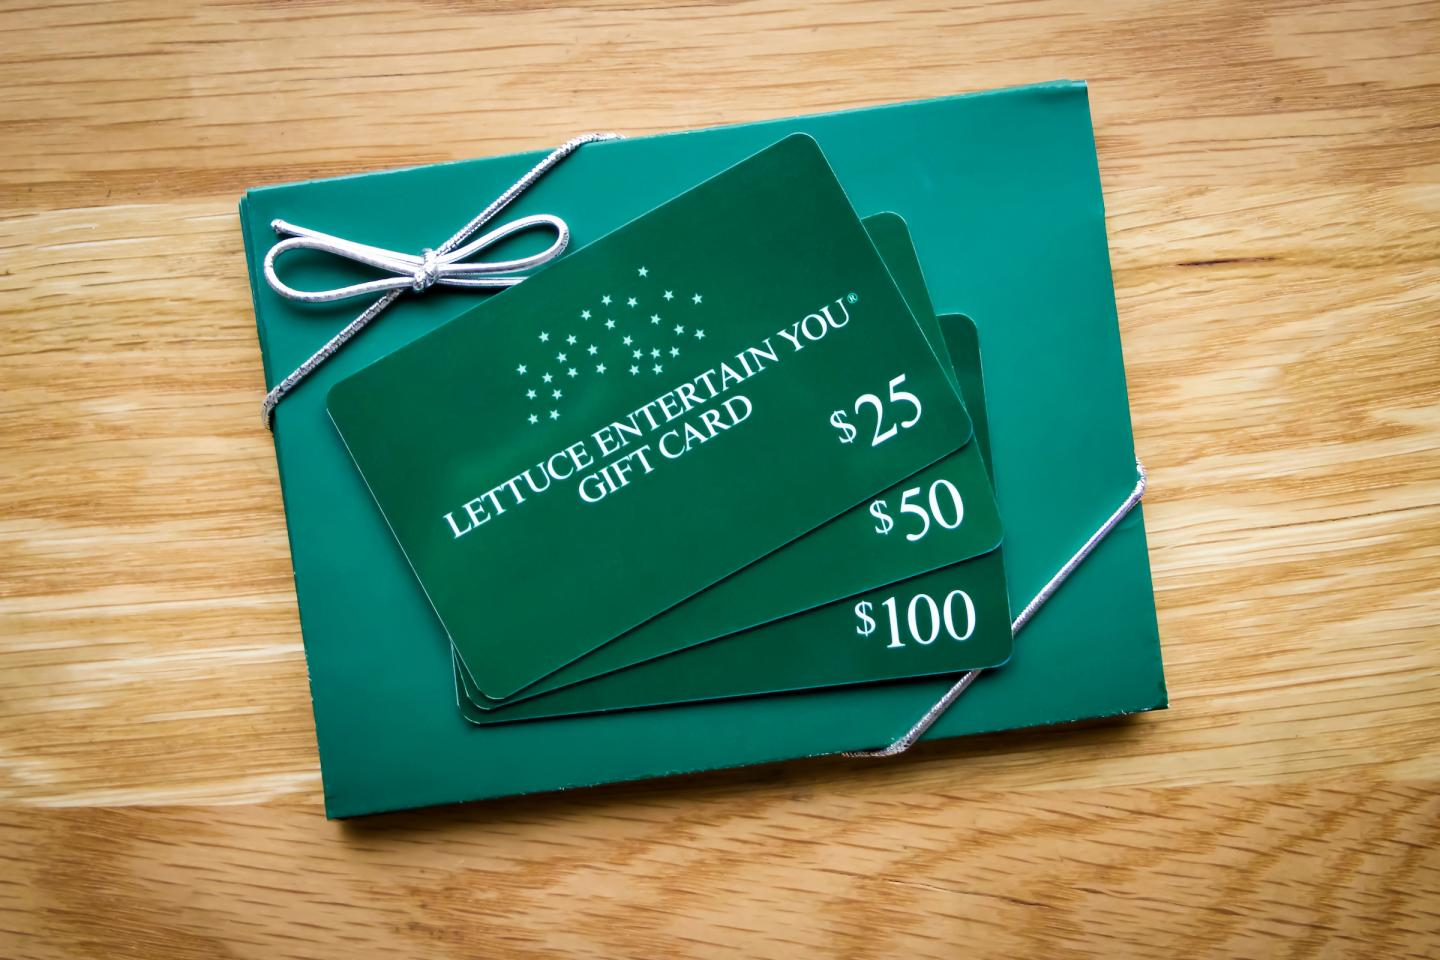 gift card from Lettuce Entertain You